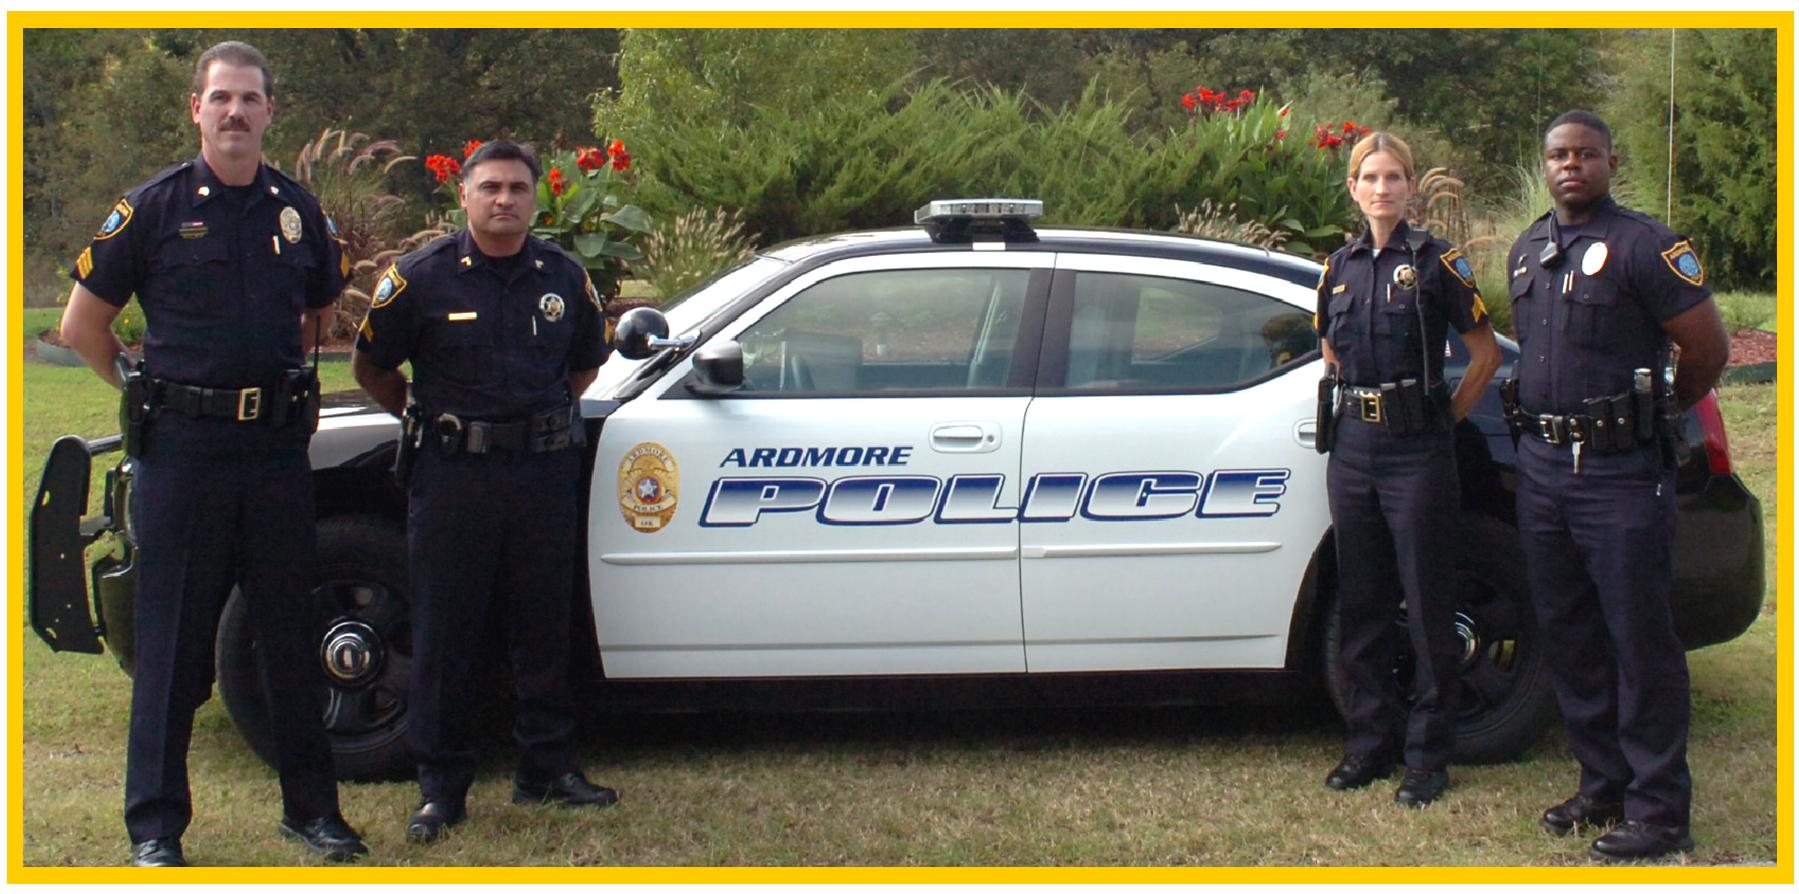 Ardmore officers pose near an Ardmore Police Cruiser